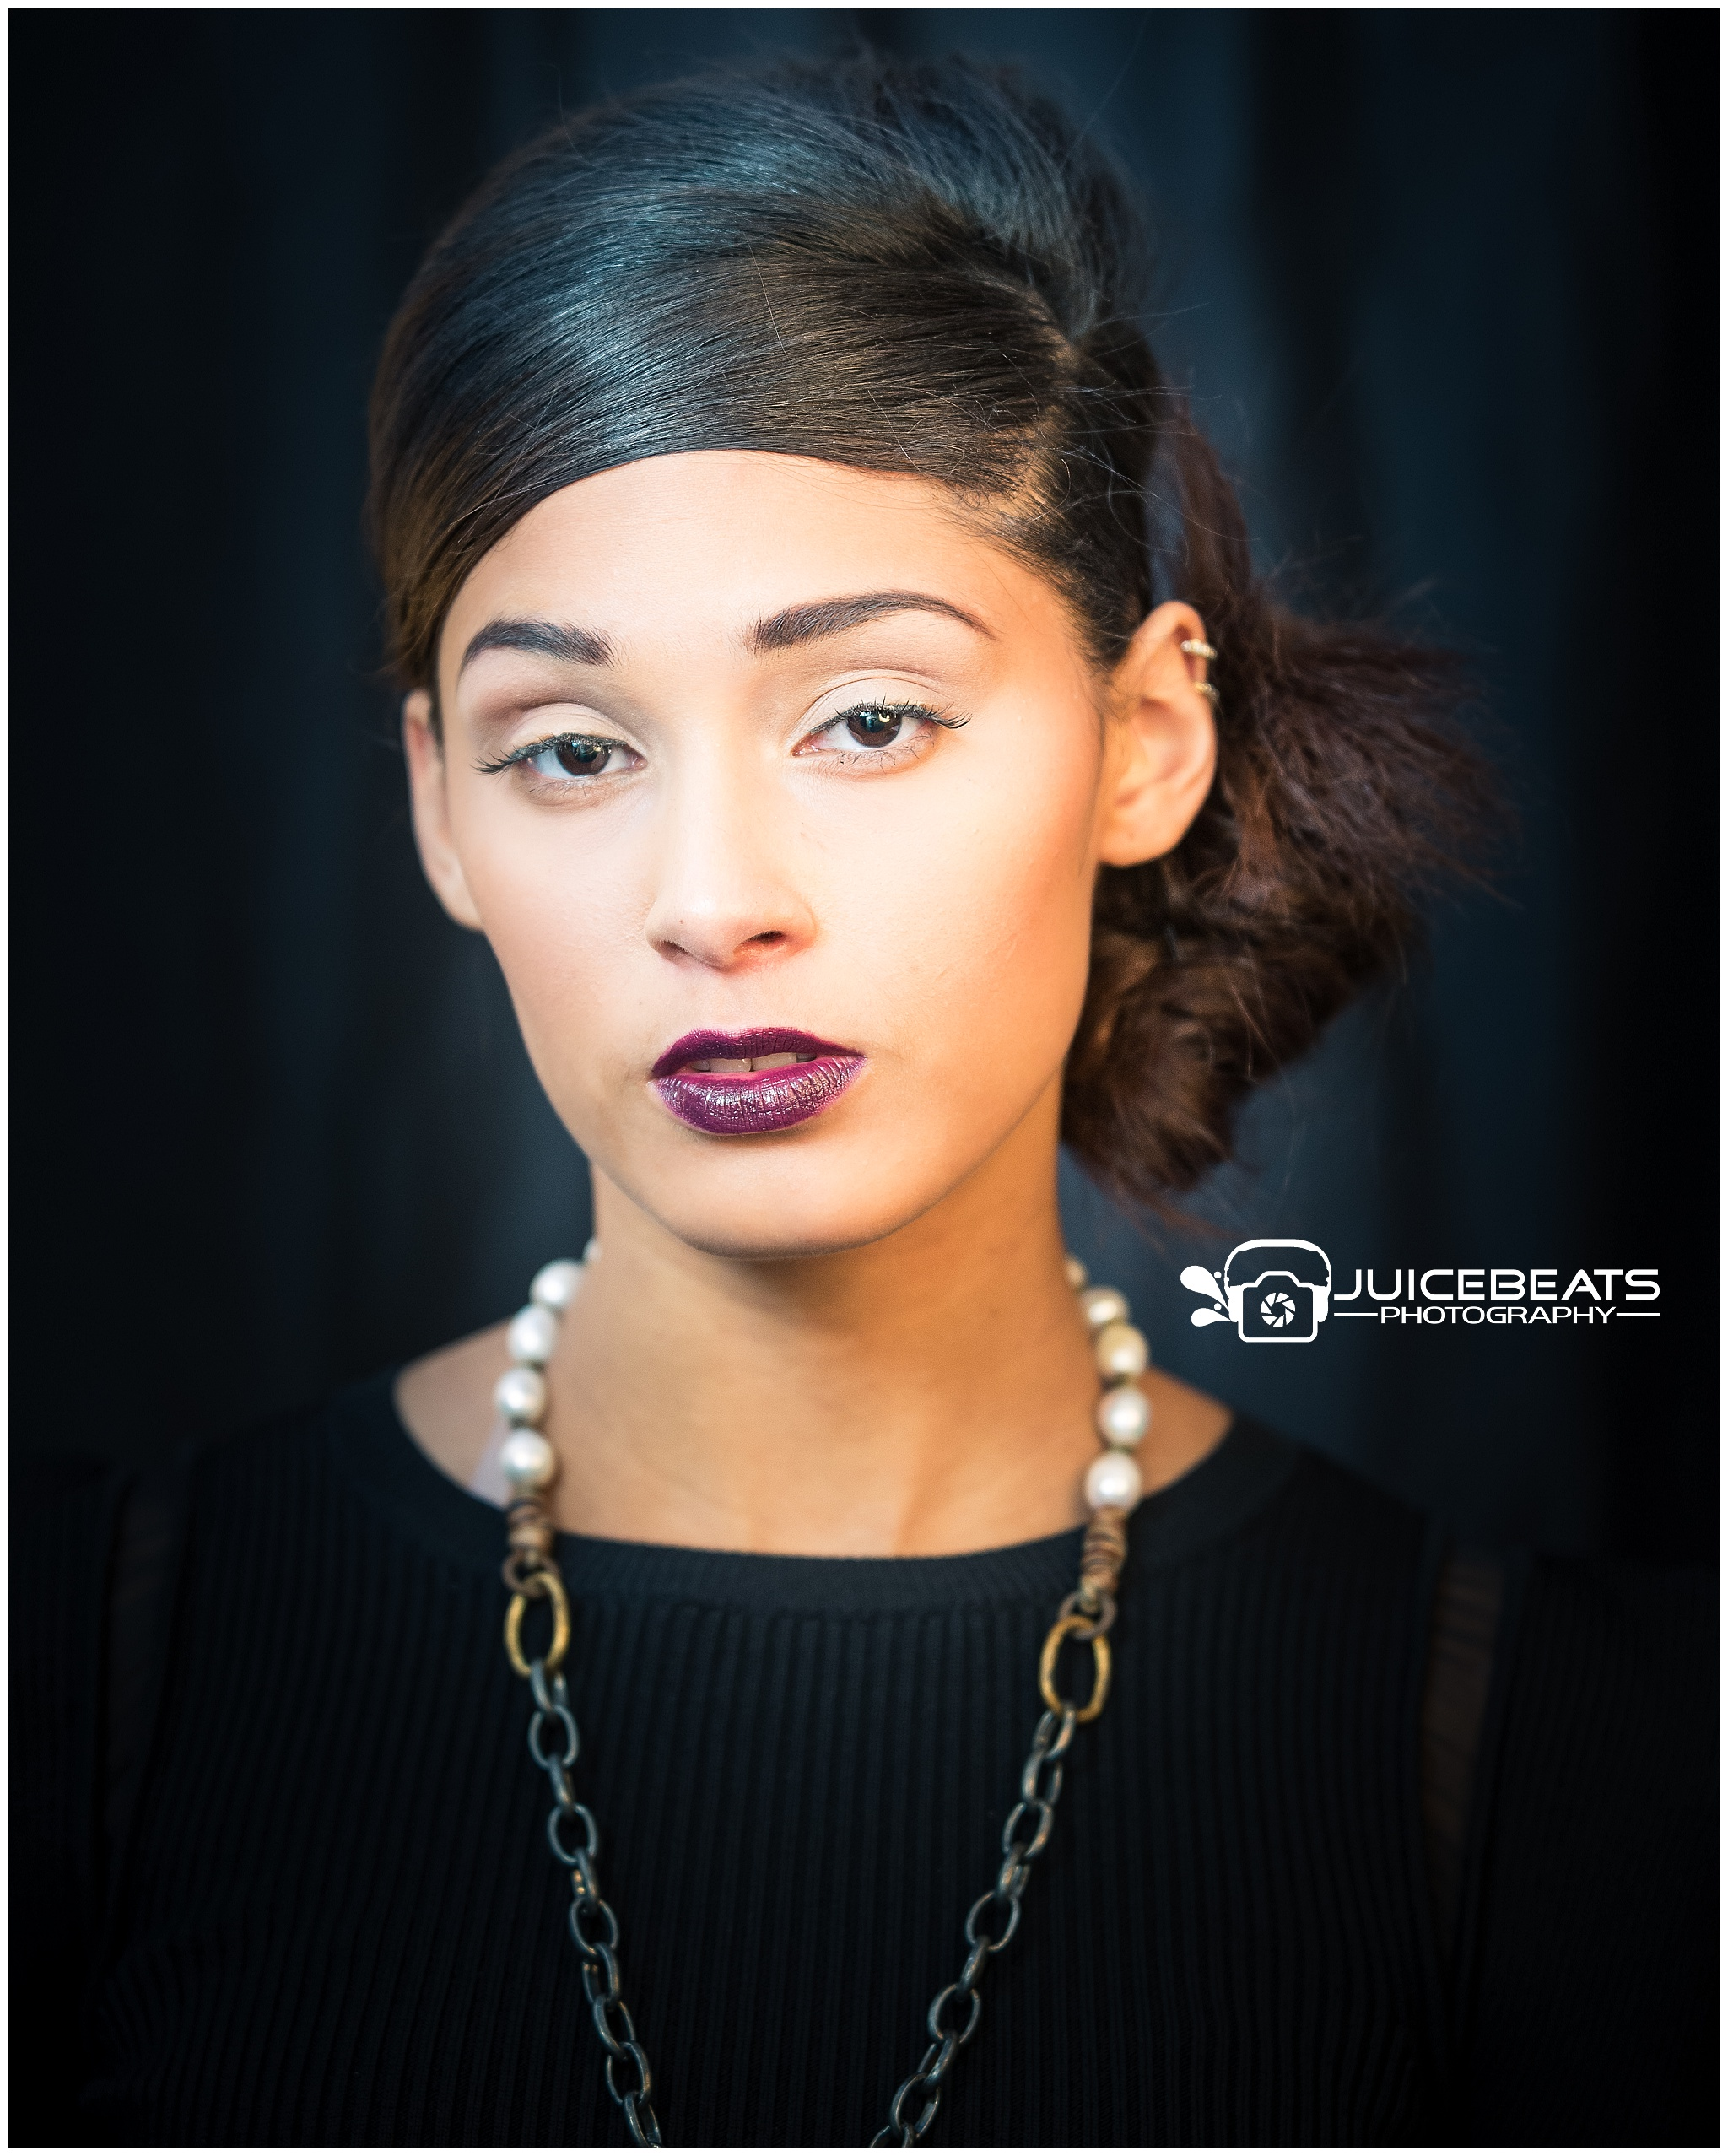 Fashion Show Headshots-8_Blog.jpg